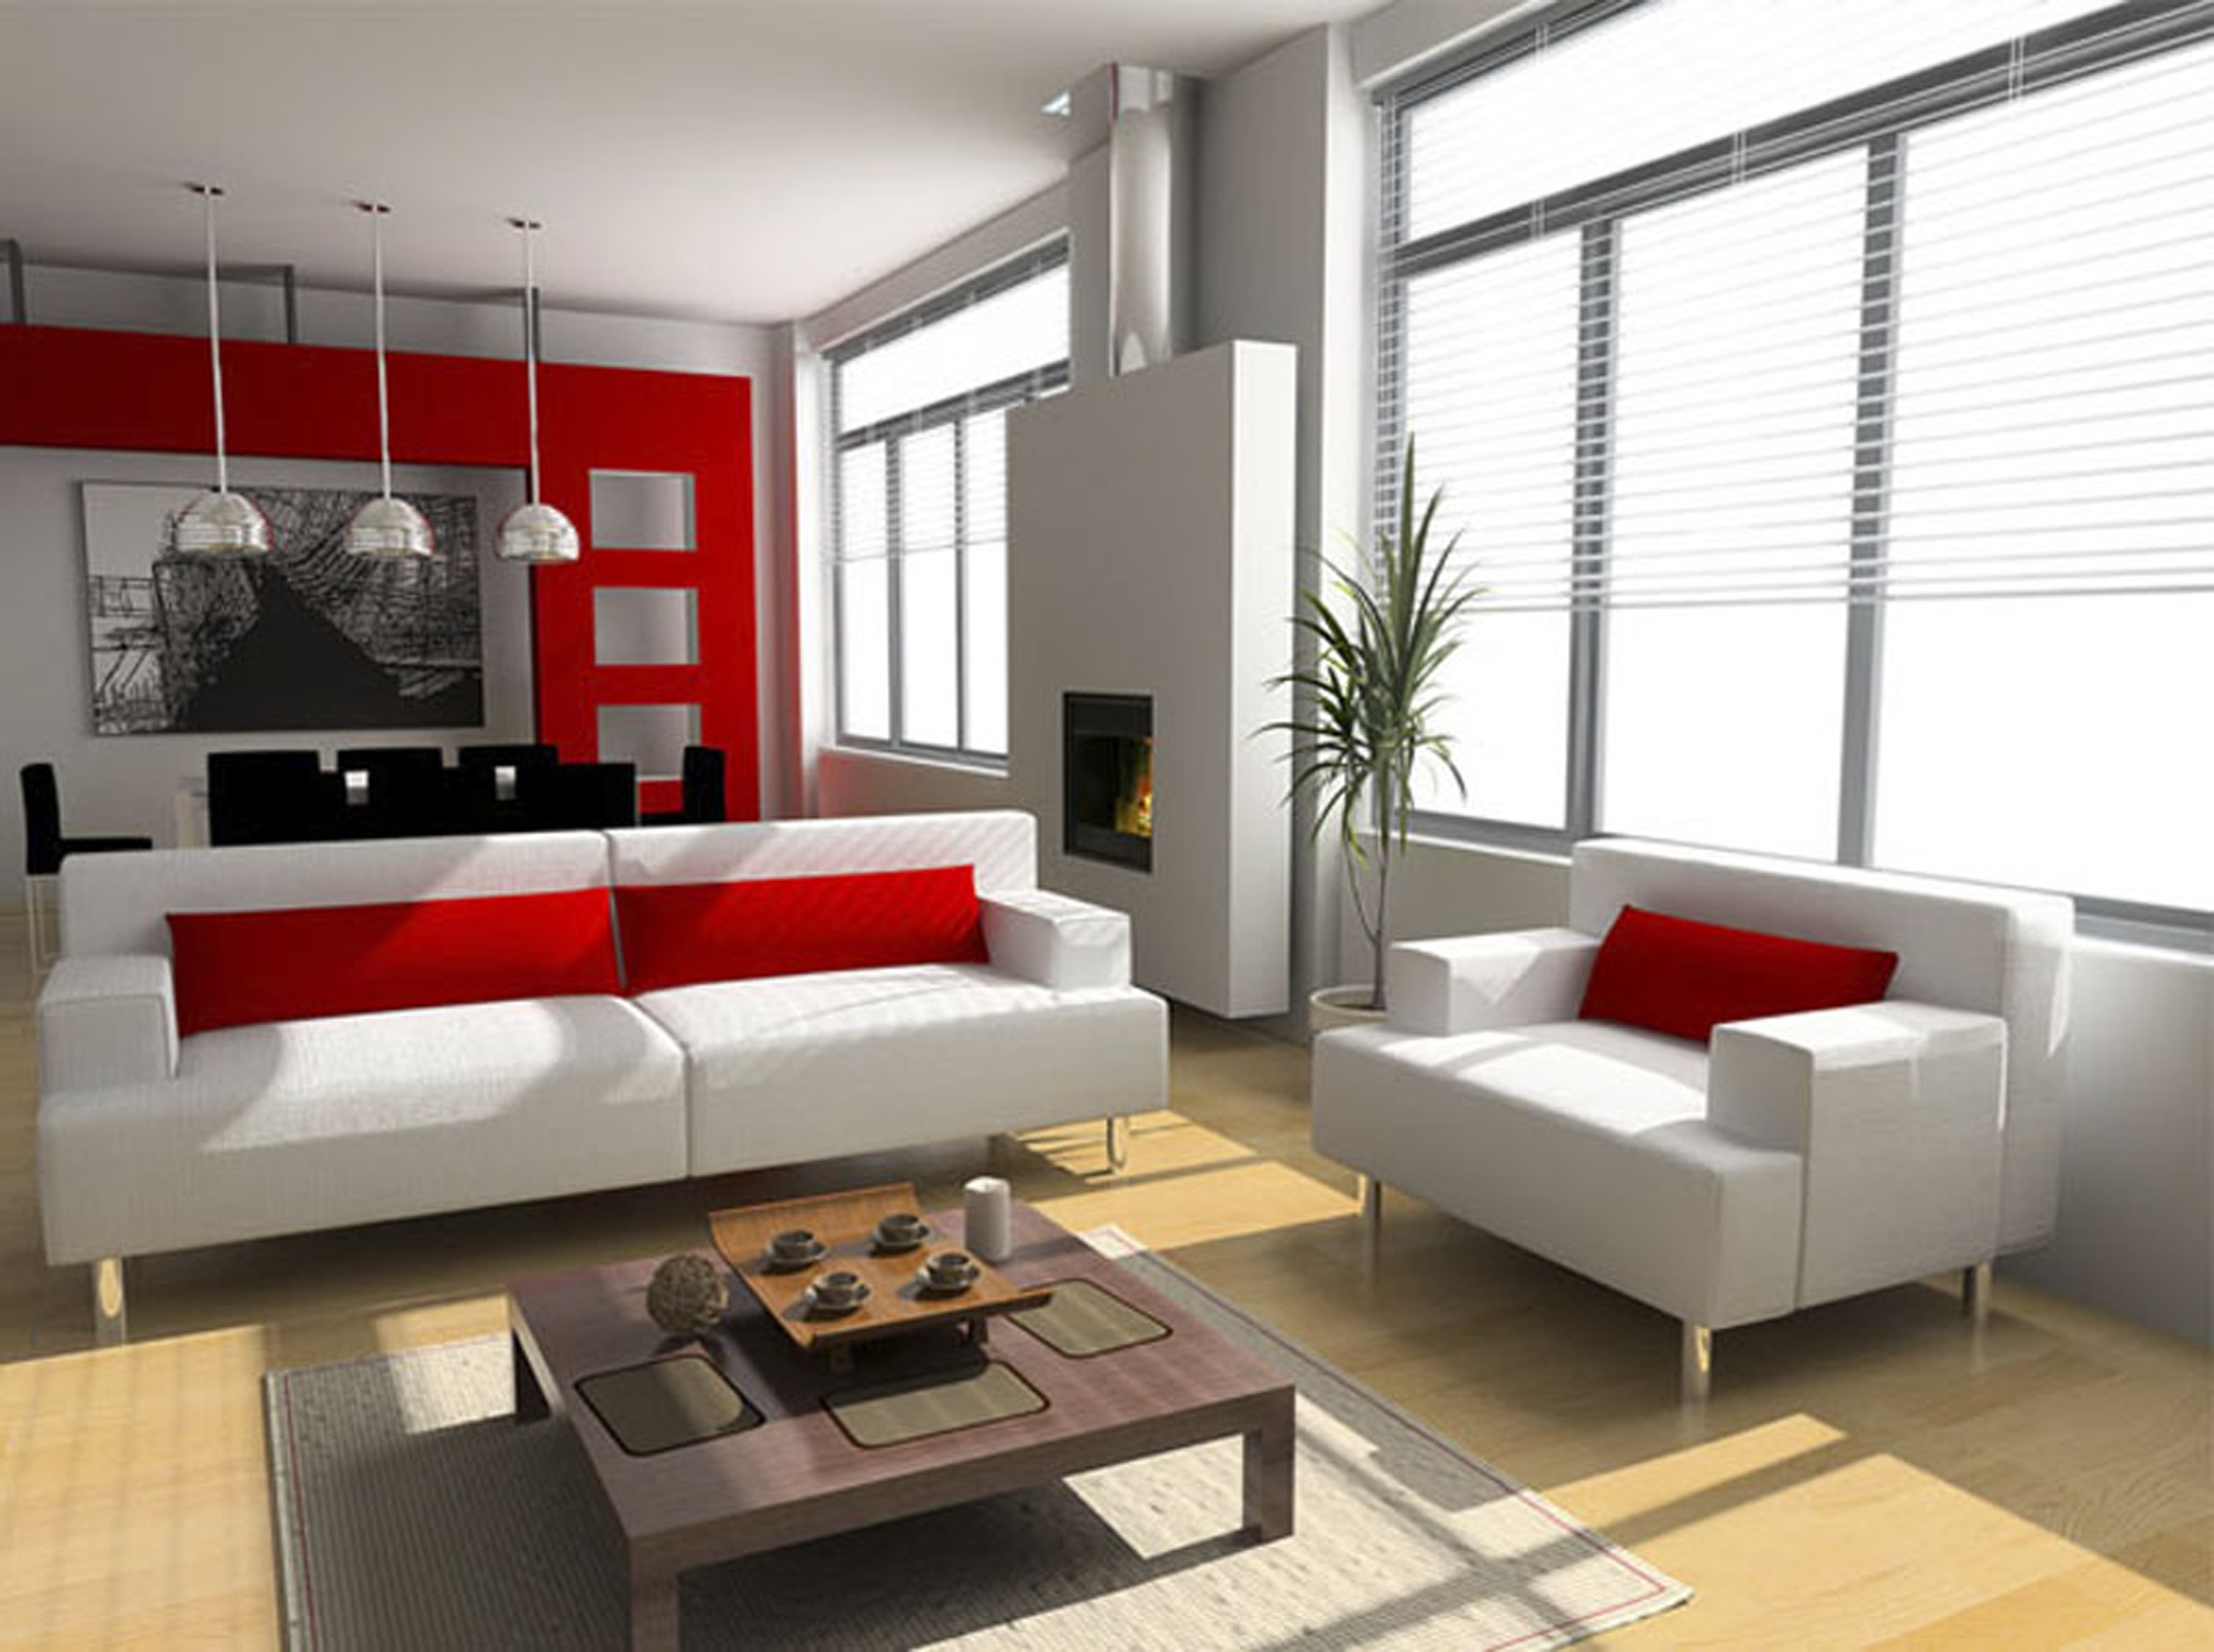 Apartments Living Room Interior Design With Red White Scheme (Image 39 of 45)